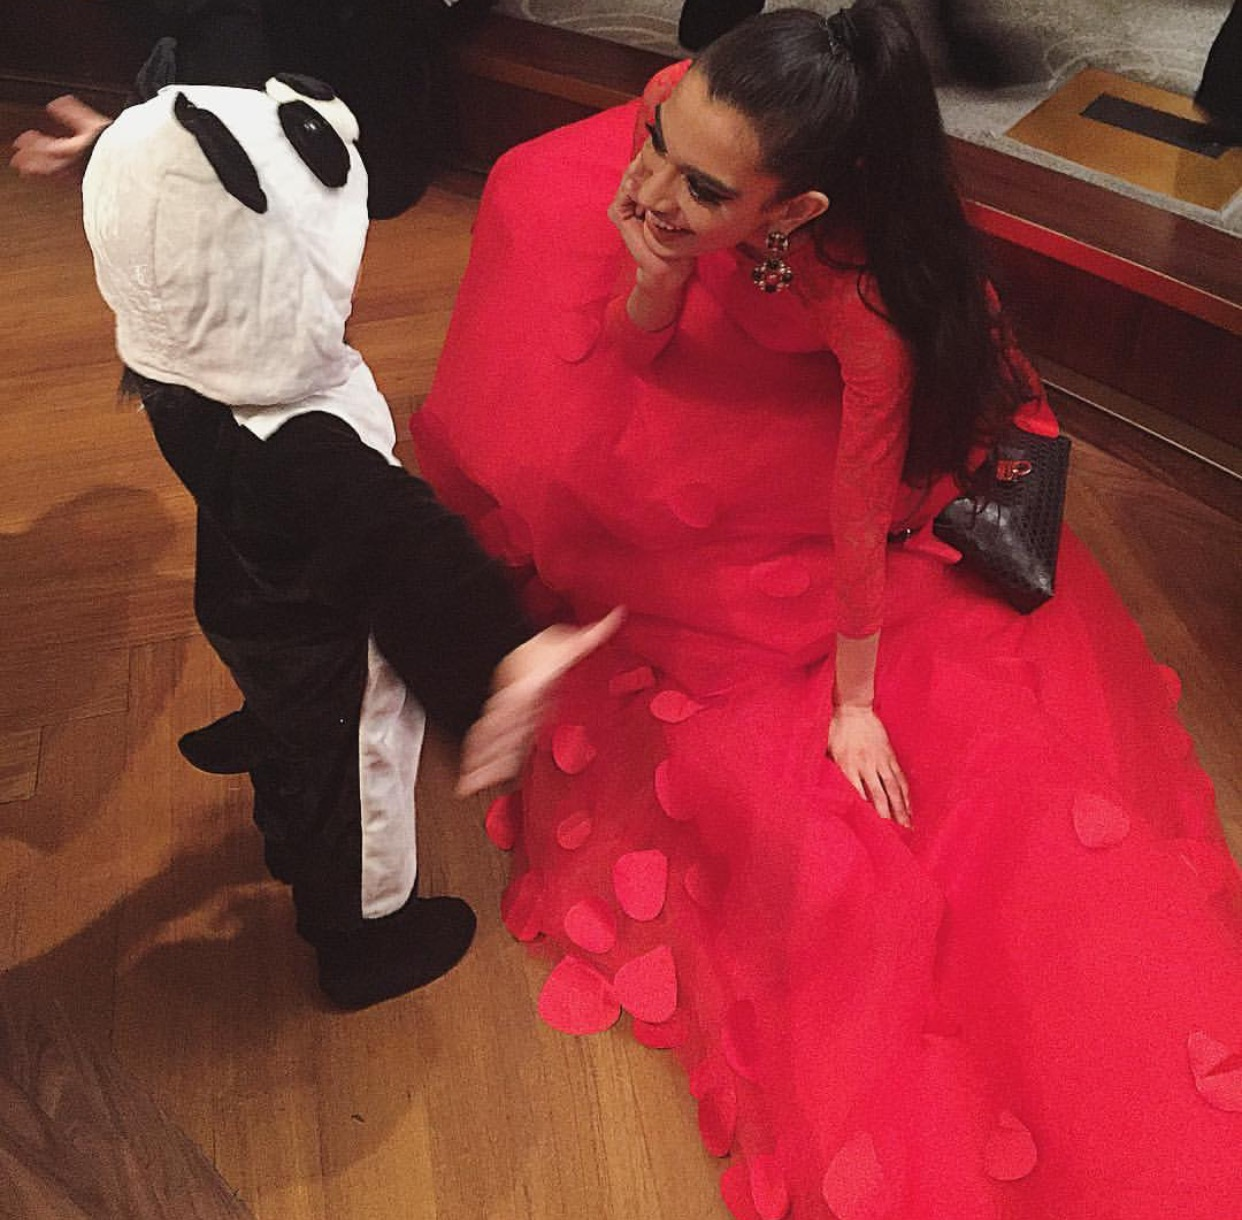 Making friends ❤️ Chinese New Year celebration at the World Panda Foundation Gala in association with the Chinese Consulate and The People's Republic of China at the legendary RAINBOW ROOM AT NBC STUDIOS! CHECK OUT what they are doing to save the majestic and beloved Giant Panda at www.worldpandafoundation.org! ❤️🐼